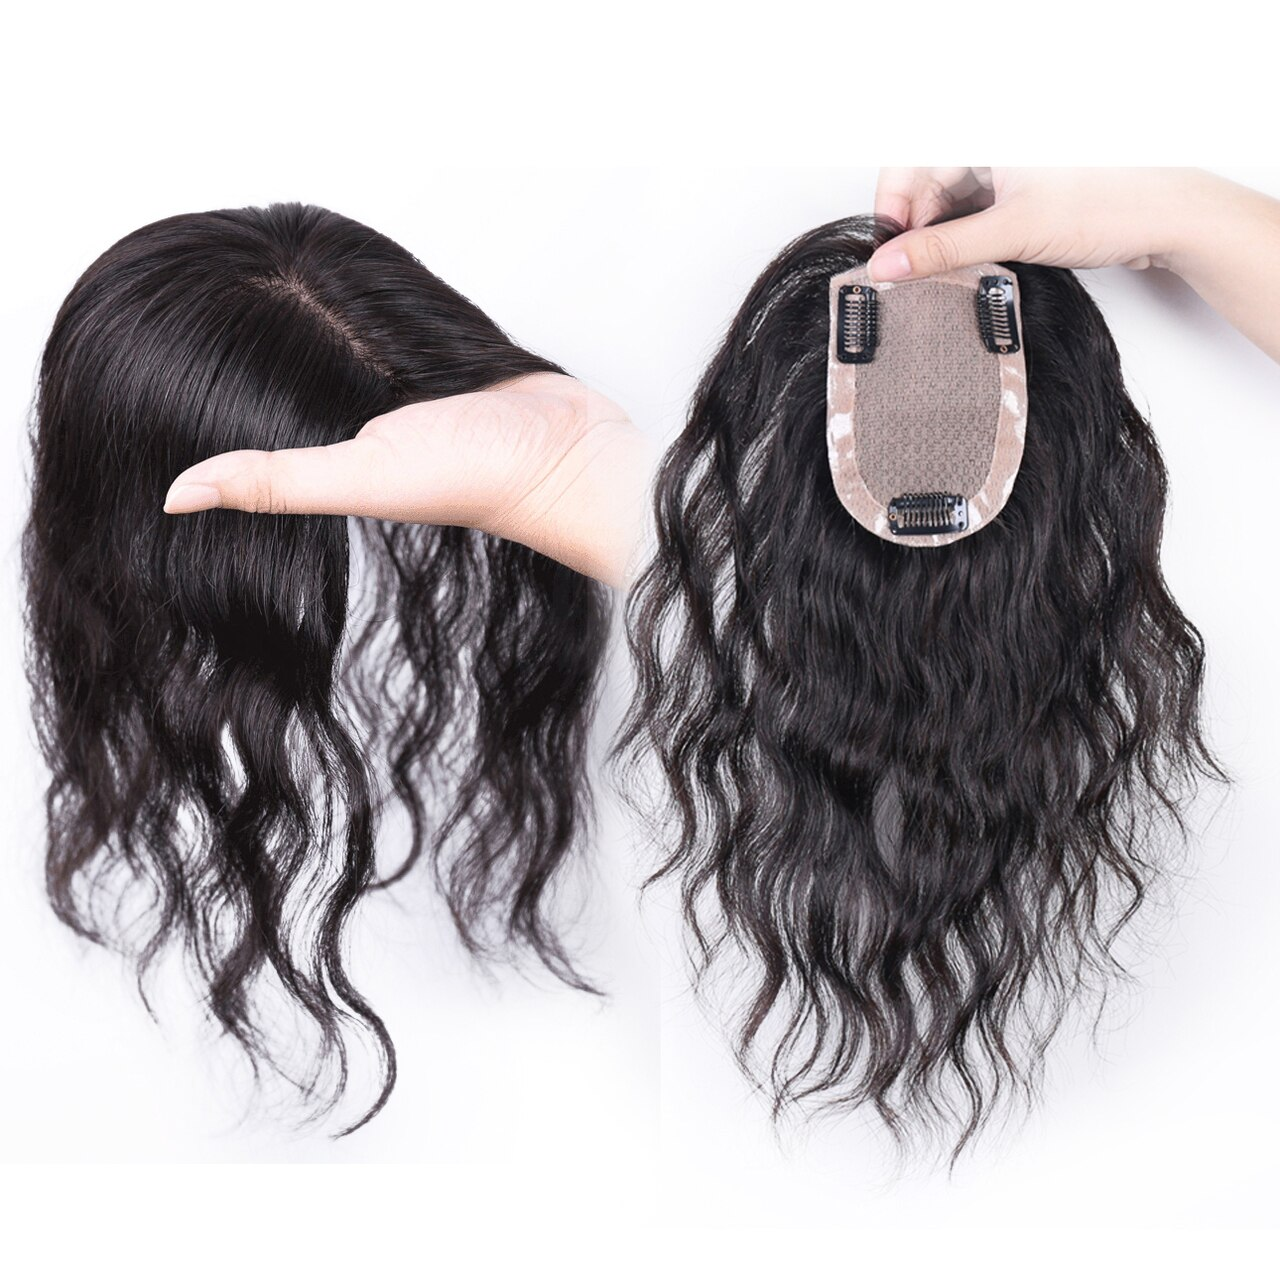 All Hand  Made Women 's Permanent Hair Reissue Of Hot Film 100% Human Hair Top Hairpiece 5